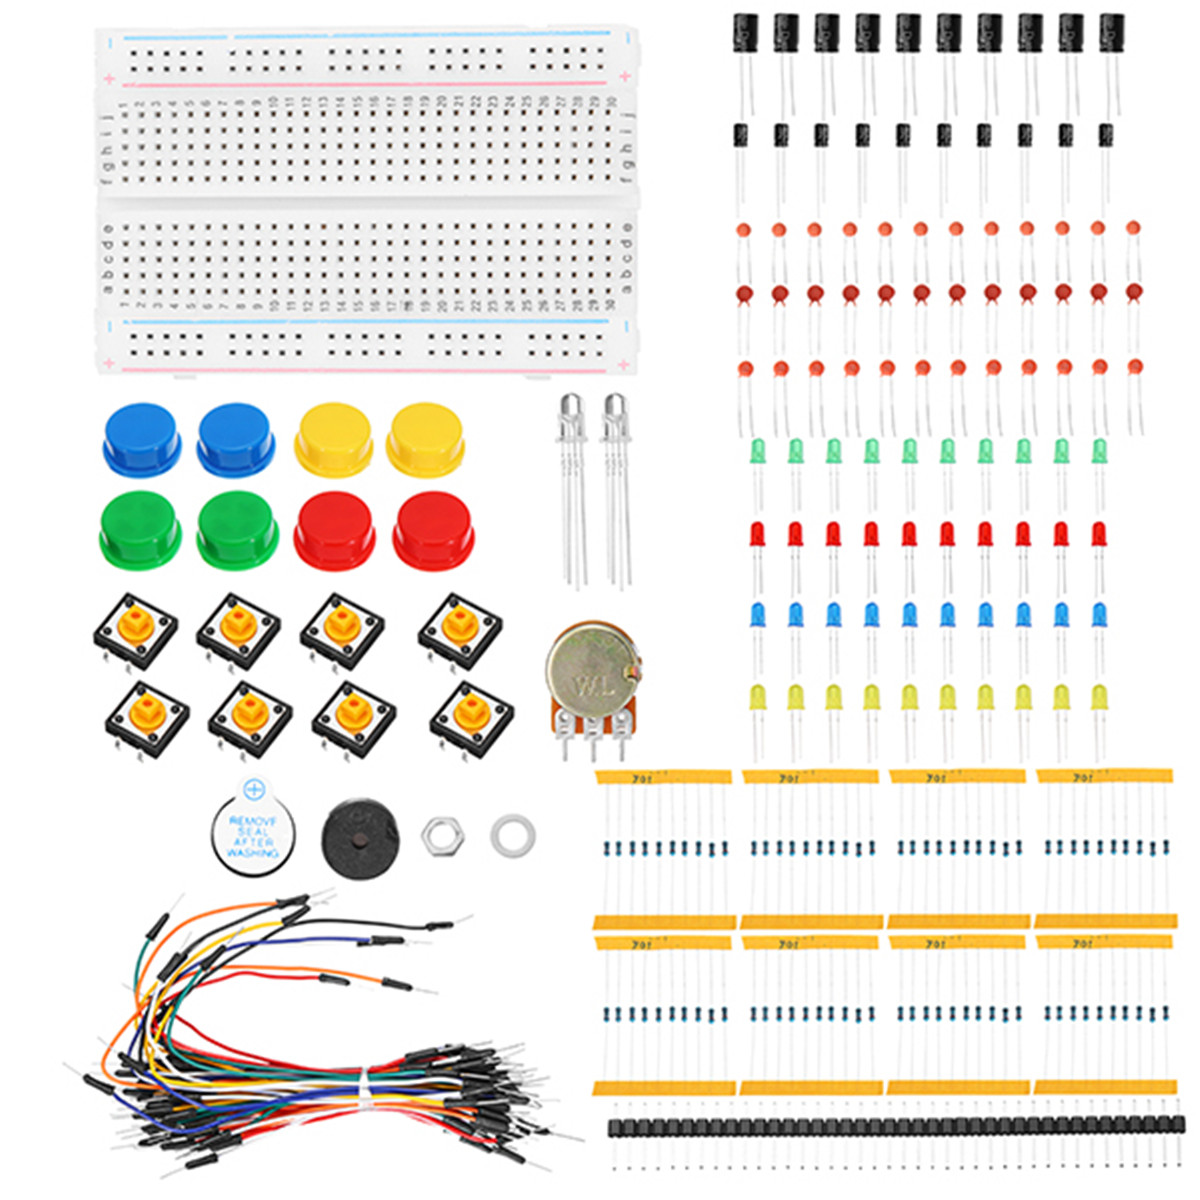 1 Set Components Starter Kit 400 Point Breadboard 30 X Jumper Wires Project 61 Breadboarded High Pass Filter Learning For Arduino Resistor Capacitor Wire Potentiometer